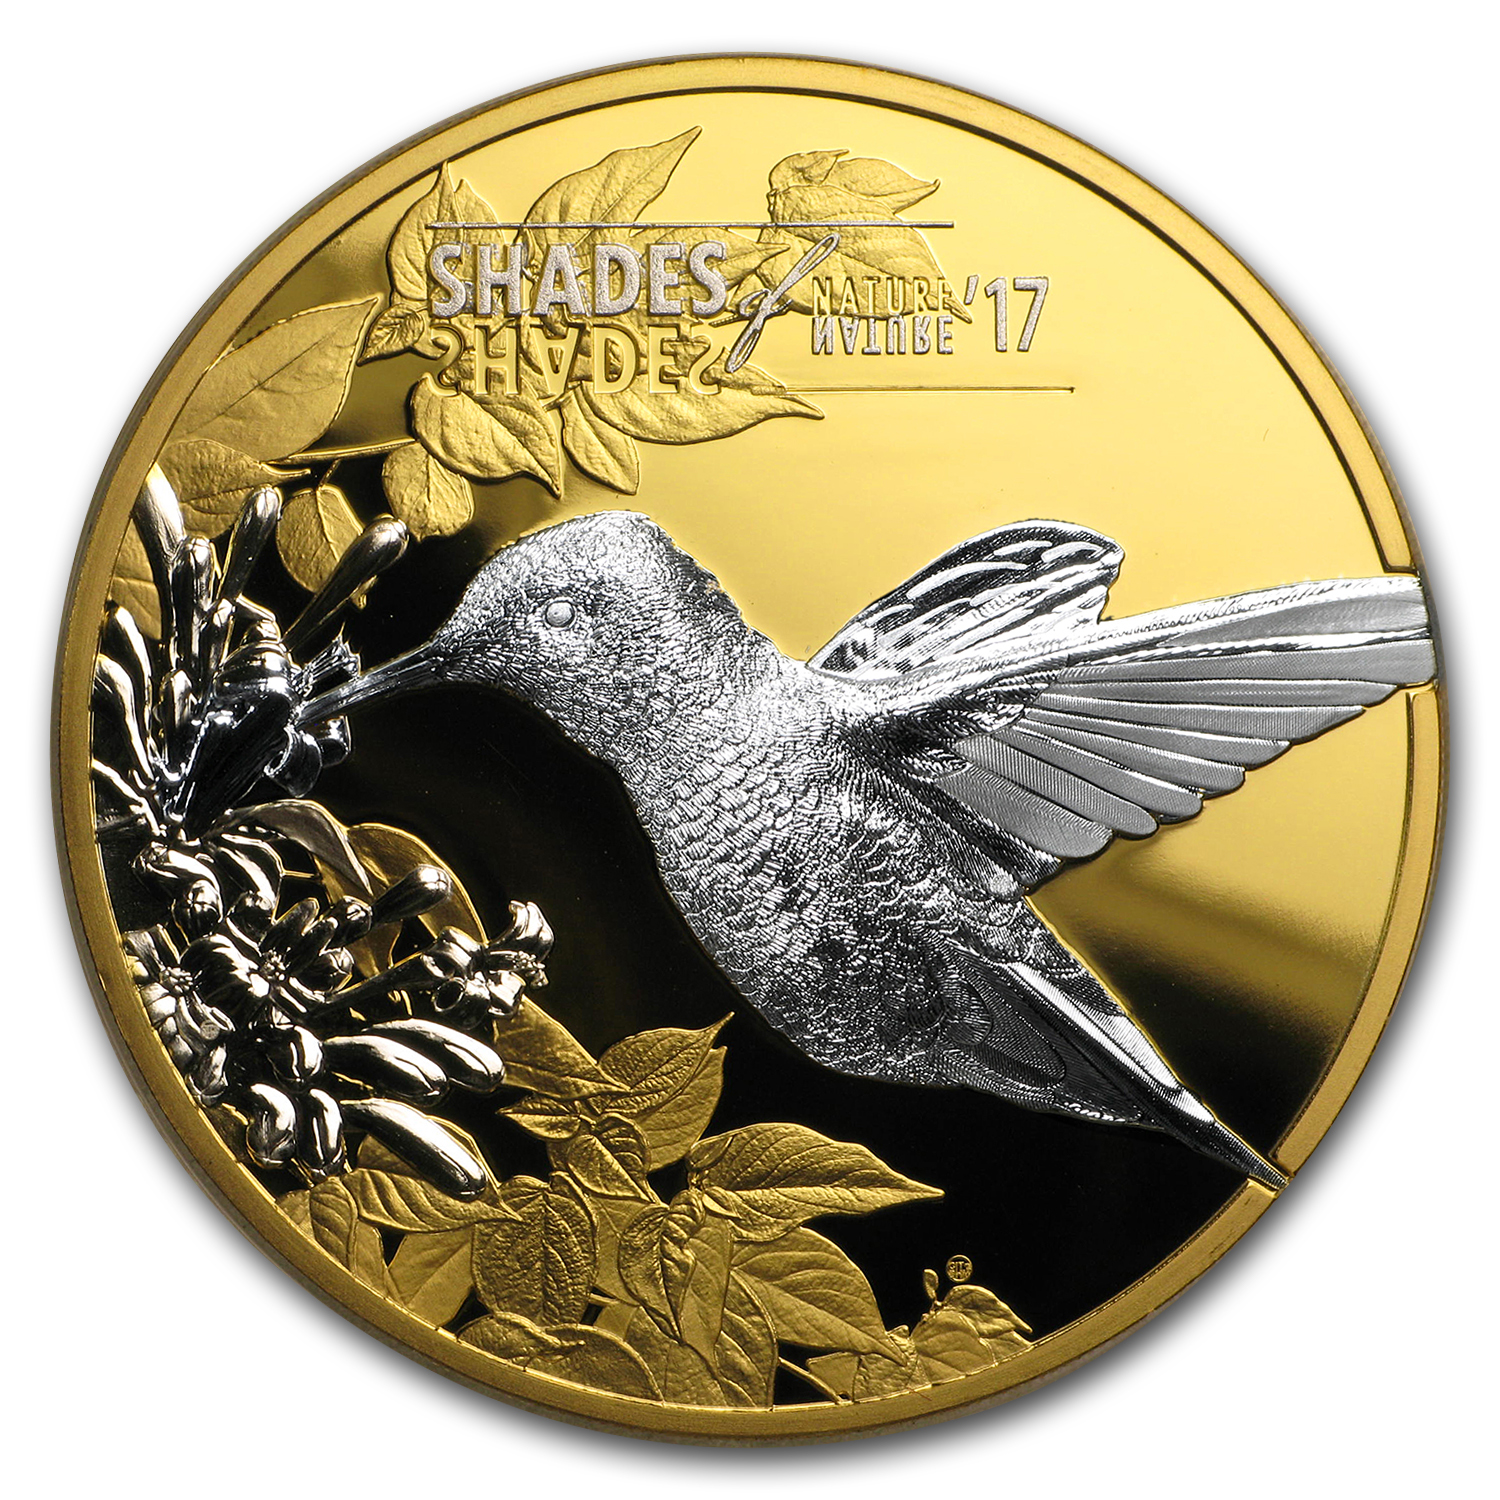 2017 Cook Islands Proof Silver $5 Shades of Nature Hummingbird